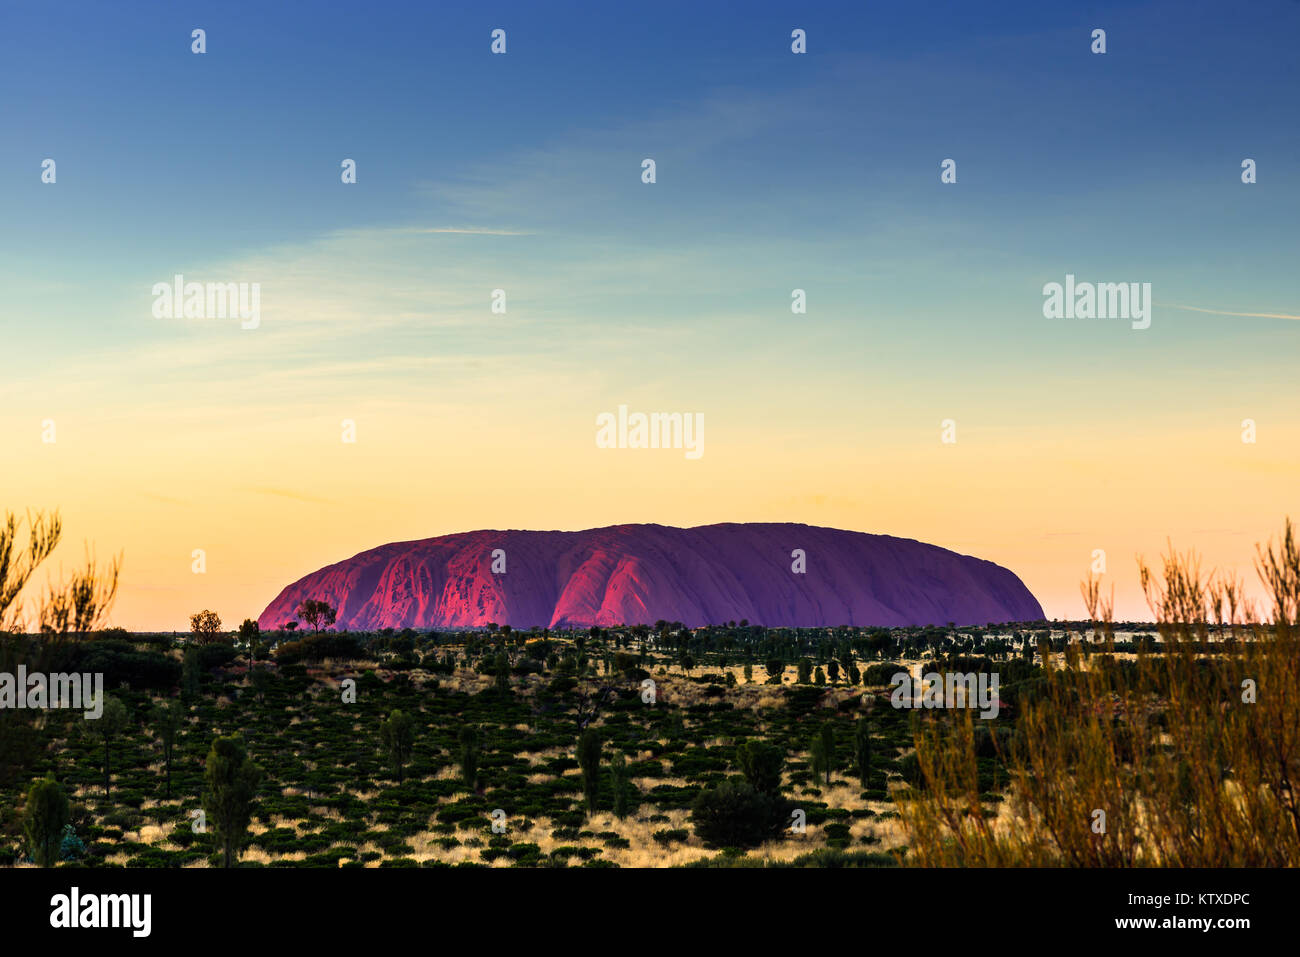 Uluru (Ayers Rock) at sunrise, Uluru-Kata Tjuta National Park, UNESCO World Heritage Site, Northern Territory, Australia, Stock Photo